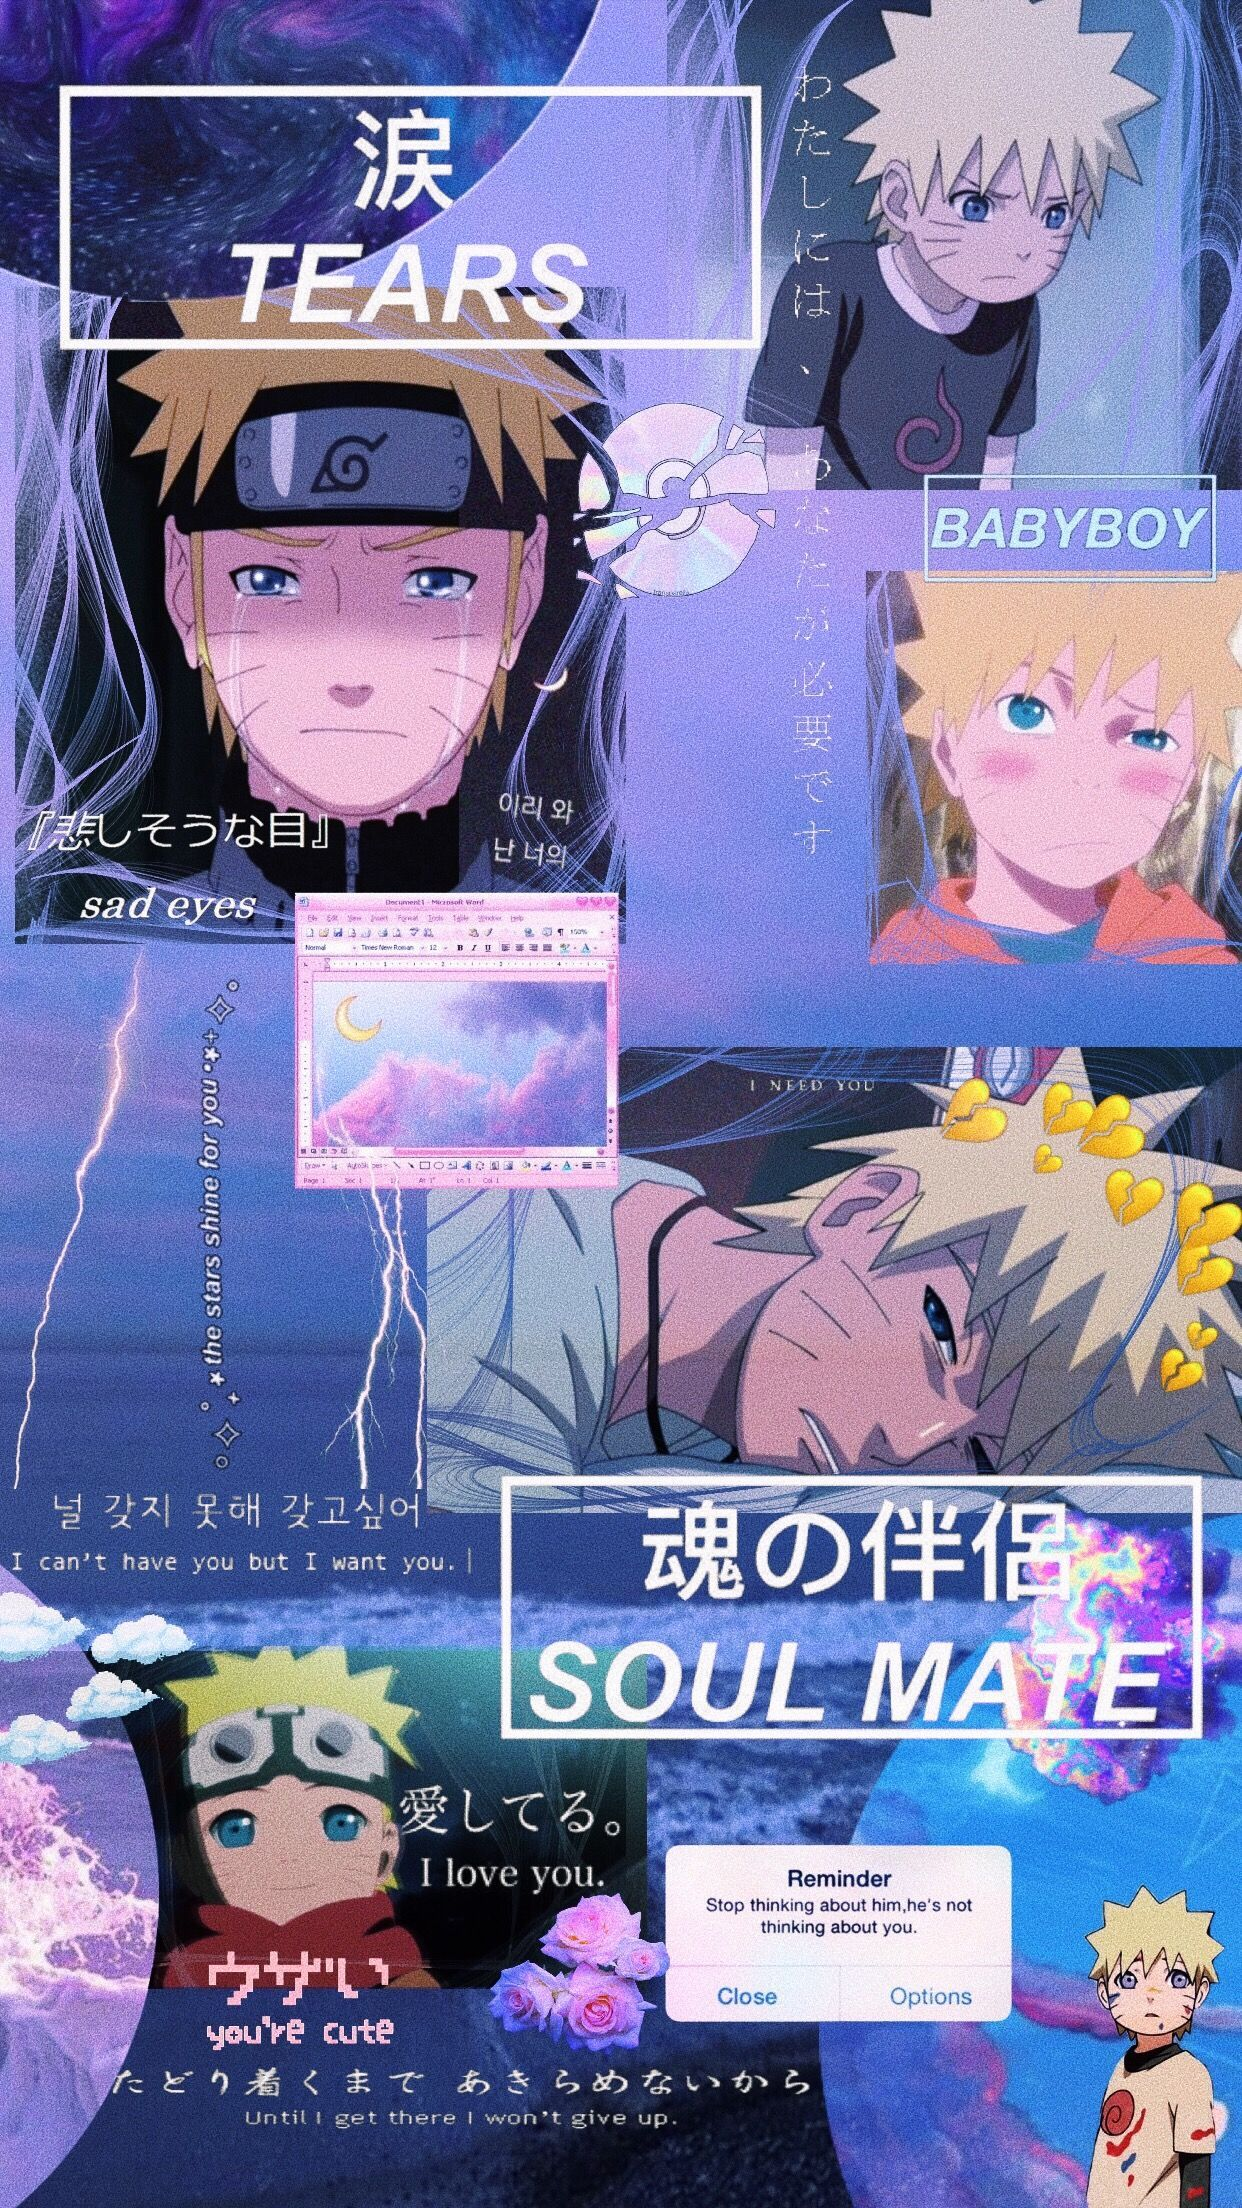 Naruto Anime Narutoshippuden Aesthetic Edit Wallpaper In 2020 Anime Wallpaper Iphone Wallpaper Naruto Shippuden Cute Anime Wallpaper